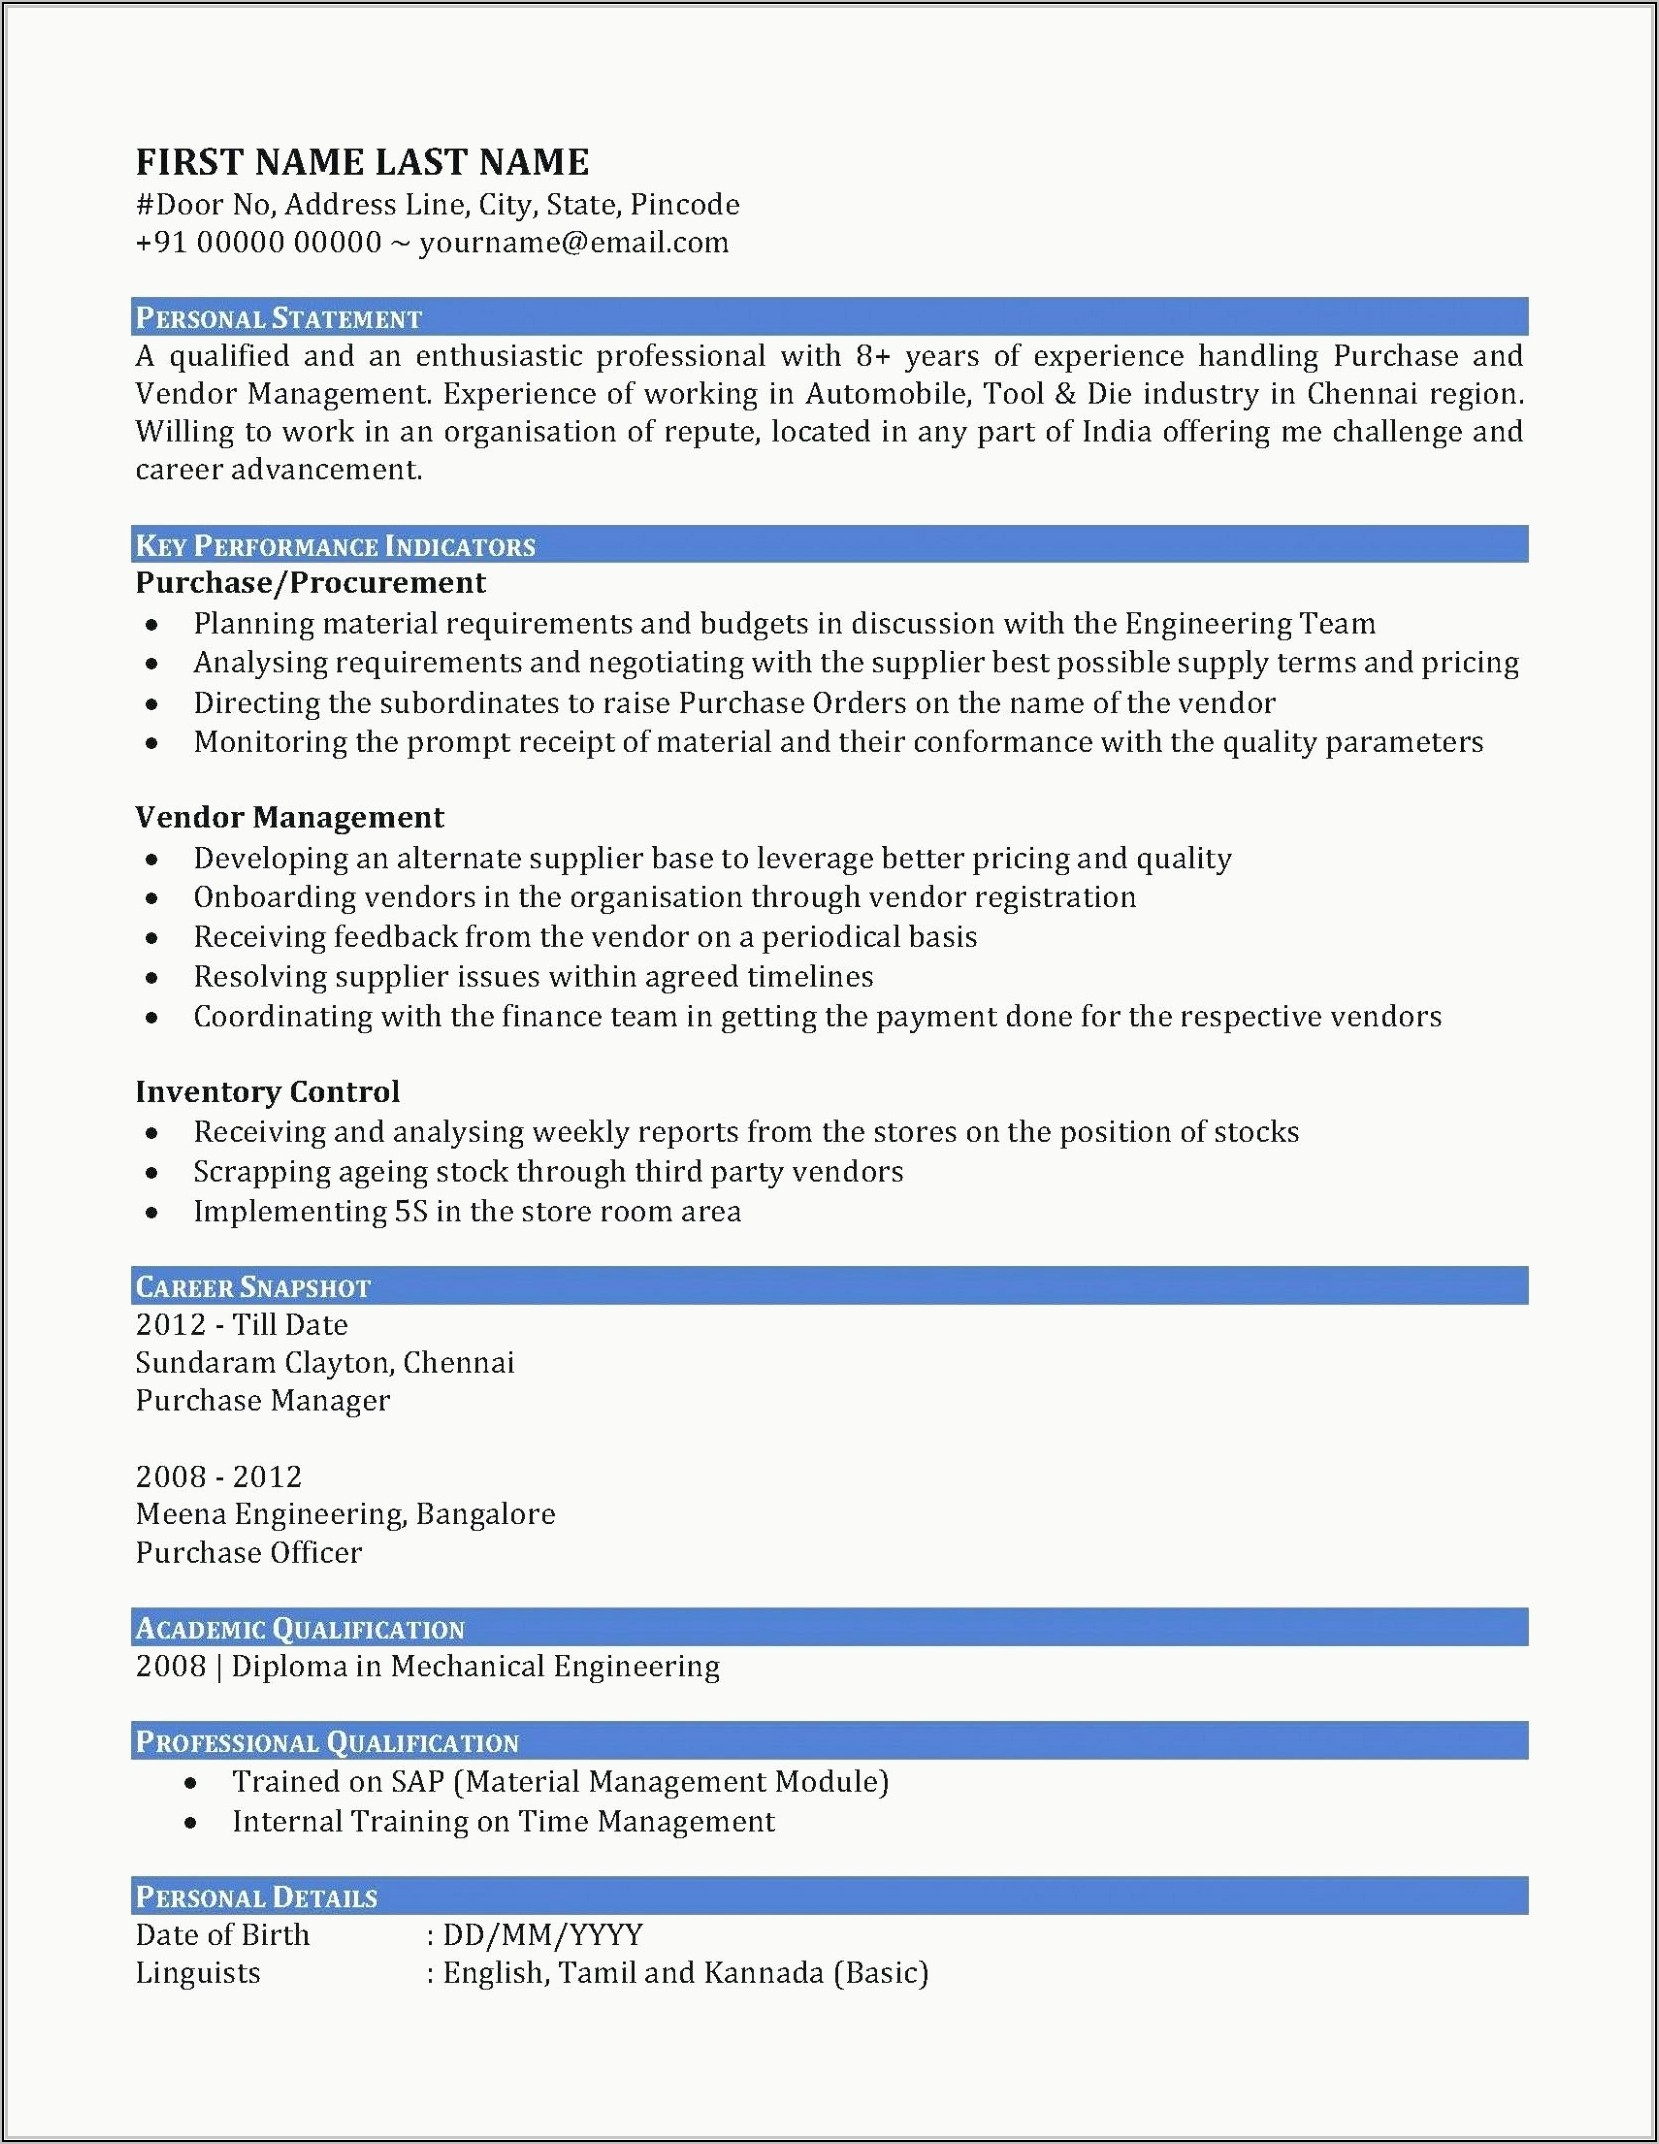 Resume For Sales Executive In Automobile